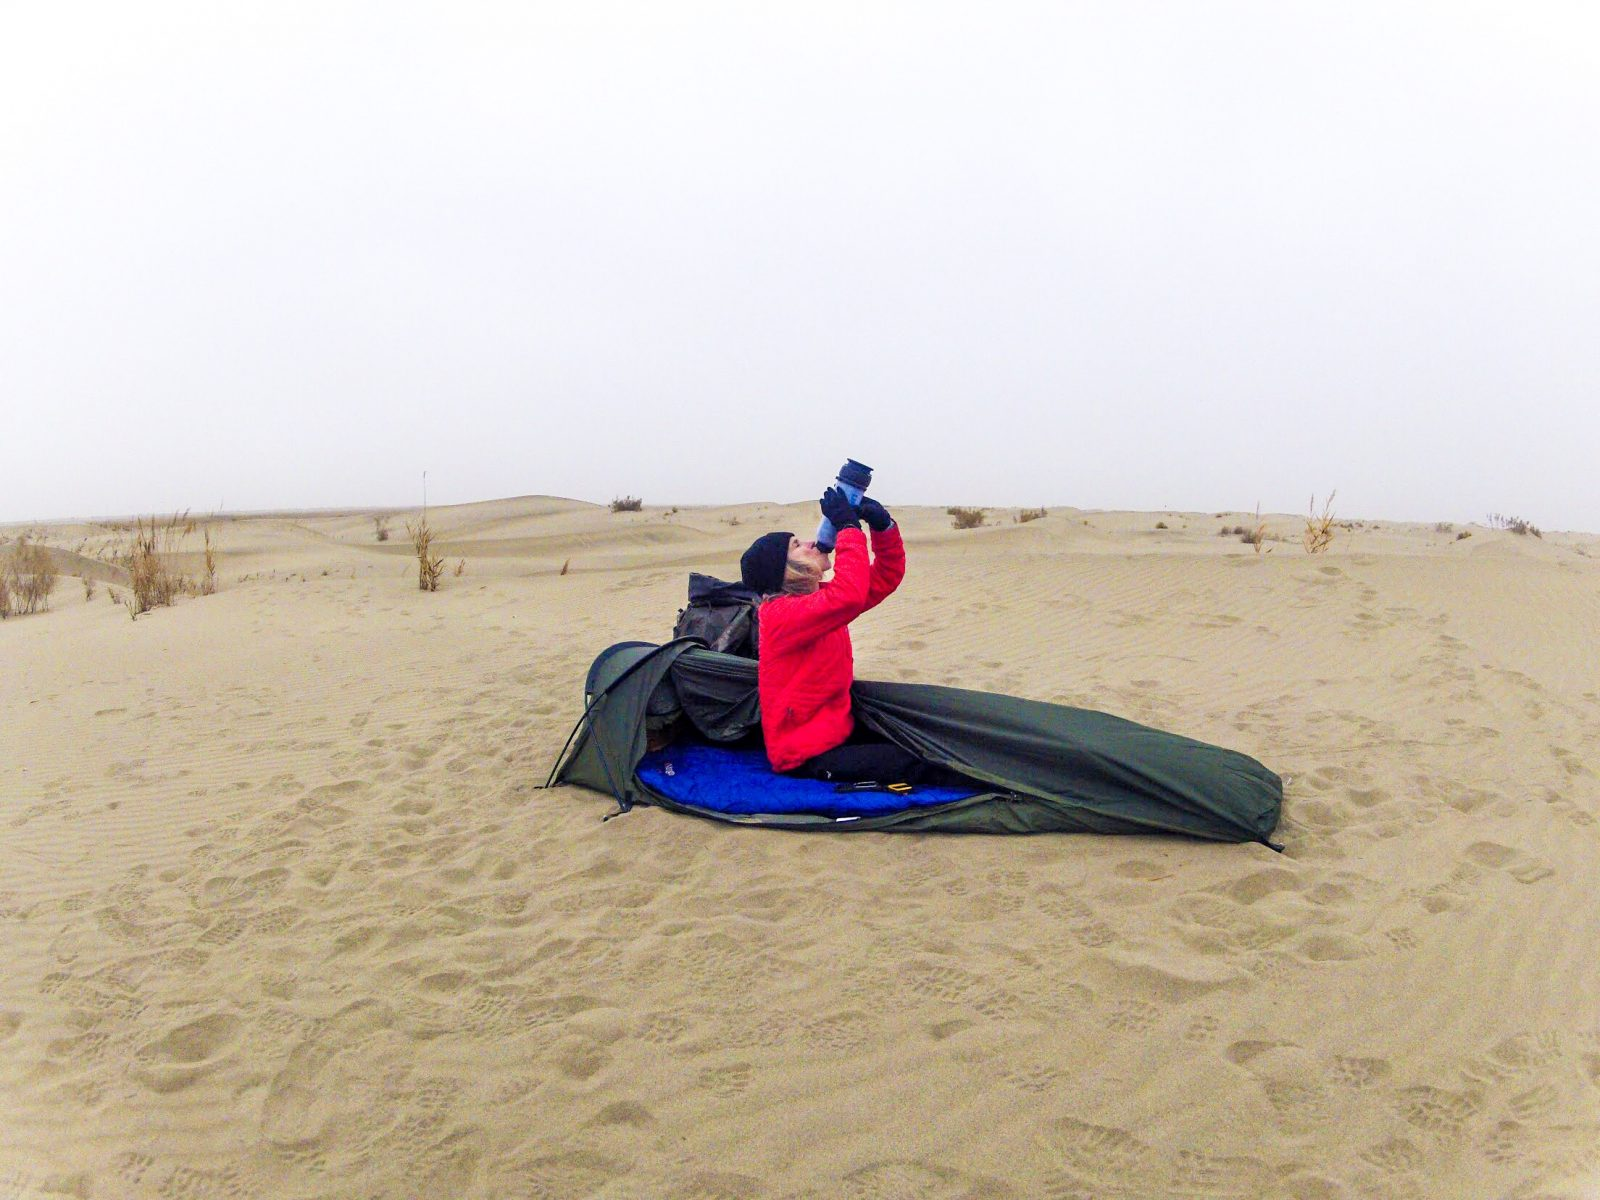 LifeSaver Sponsor Rosie Stancer Expedition Across the Taklamakan Desert